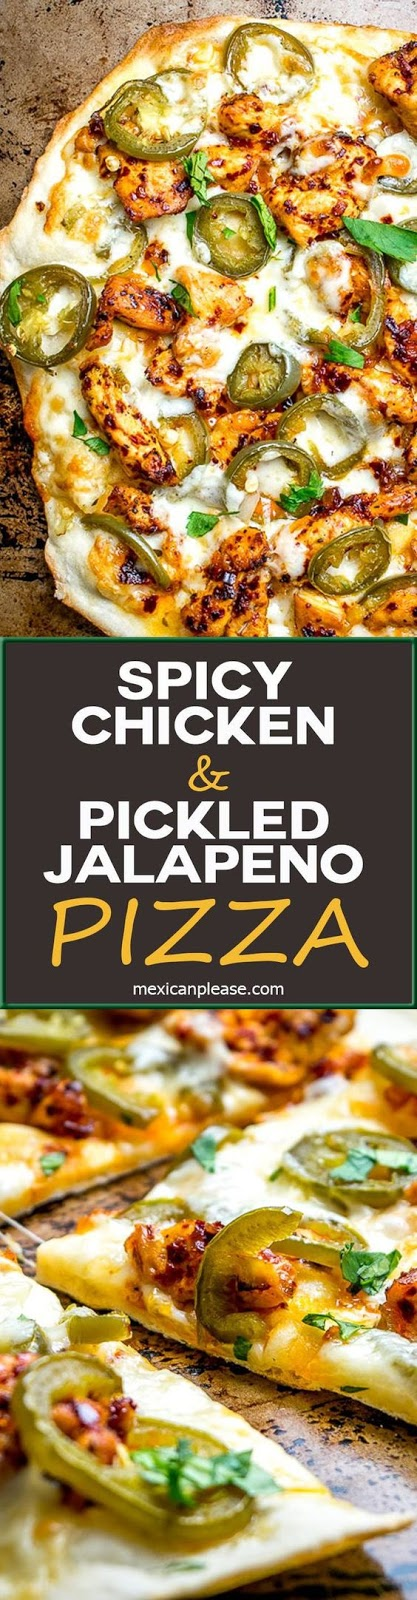 SPICY CHICKEN AND PICKLED JALAPENO PIZZA